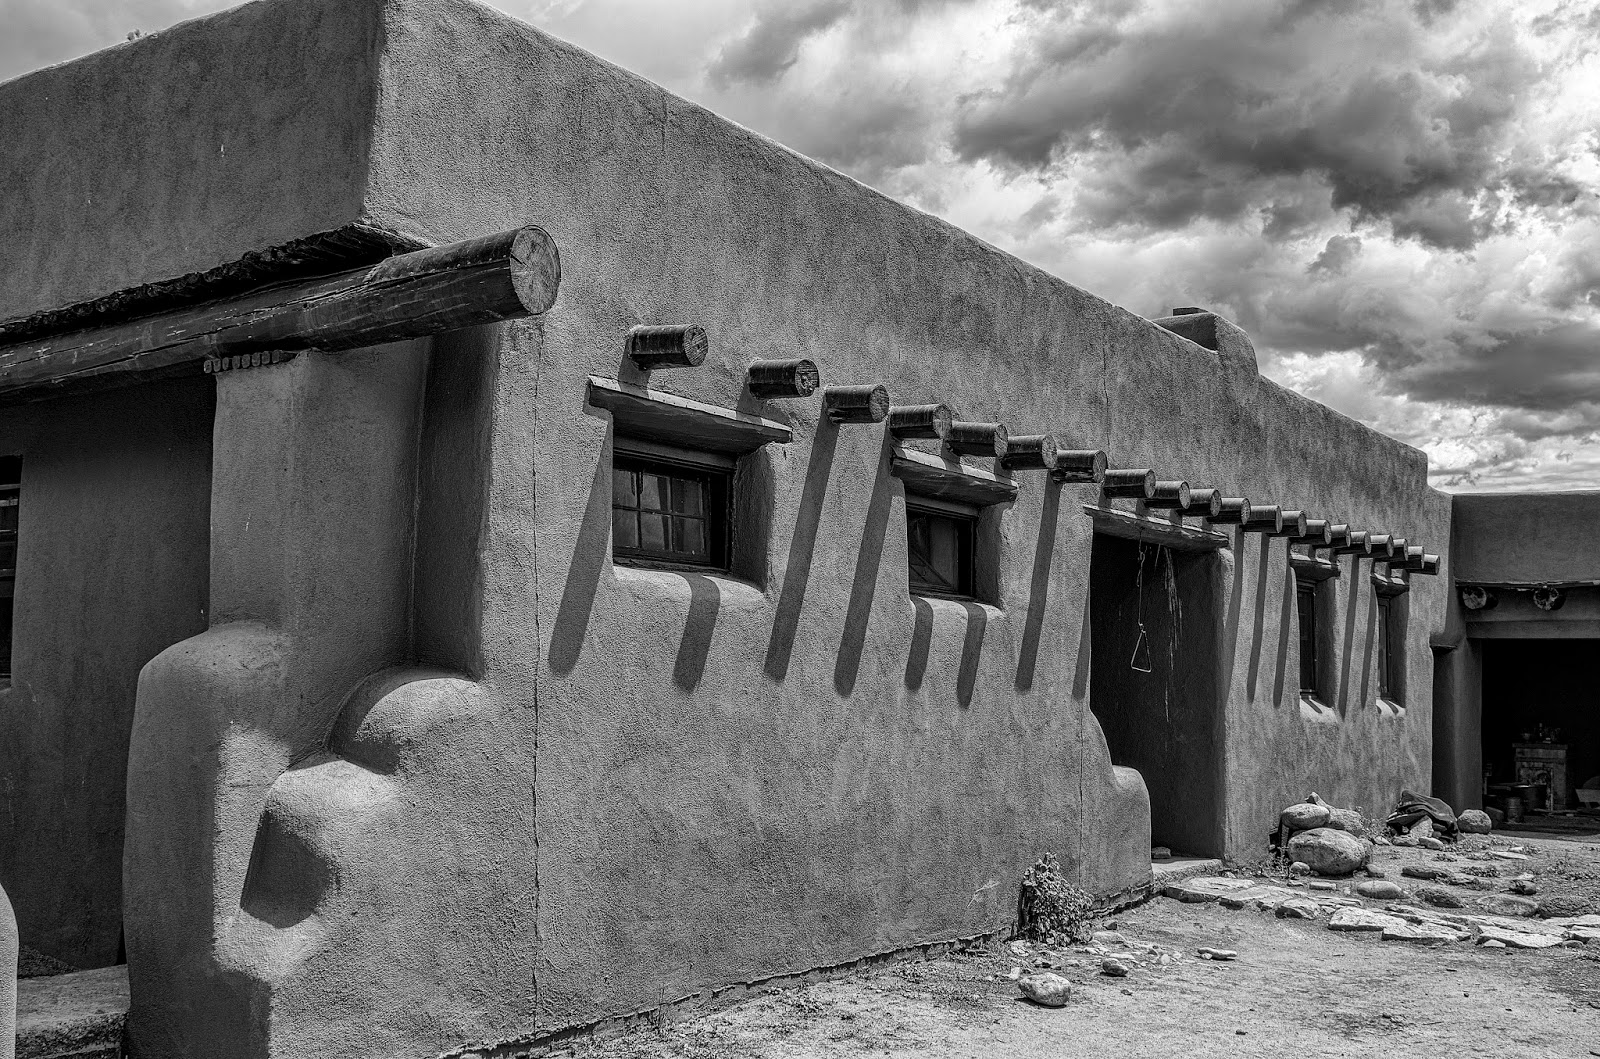 Halscott Photo New Mexico